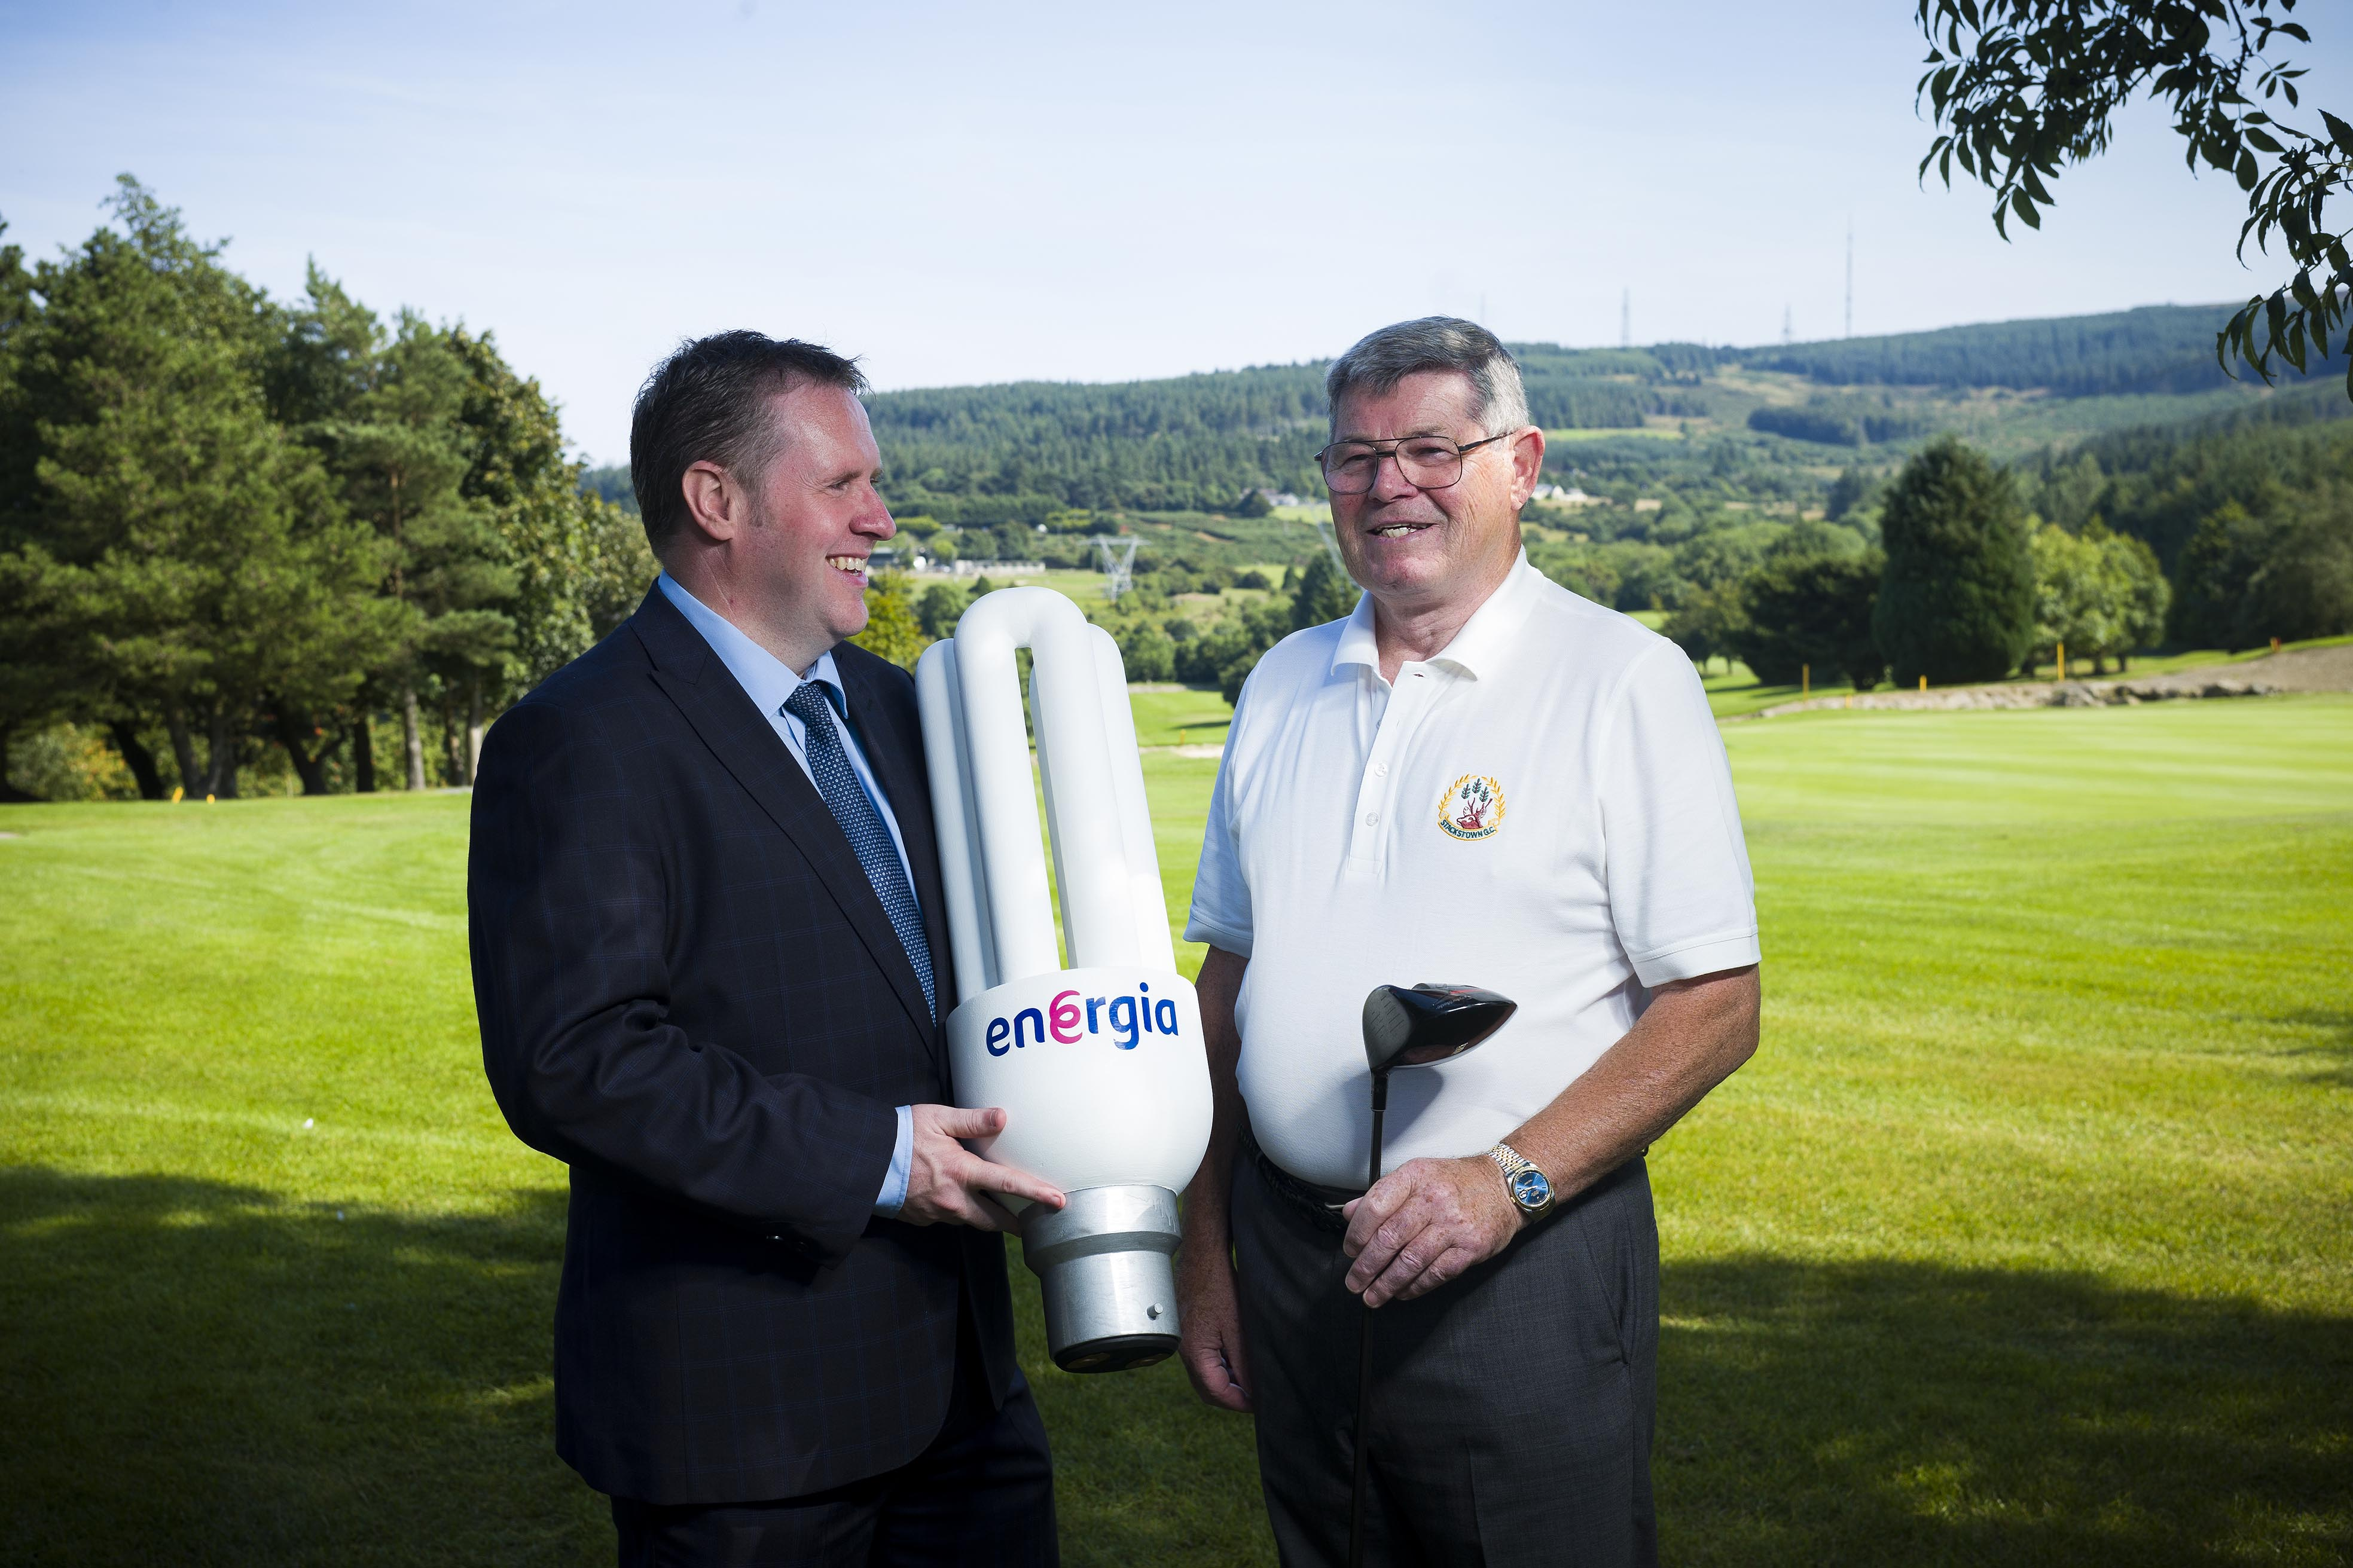 Energia supply deal adds extra green to Stackstown Golf Club